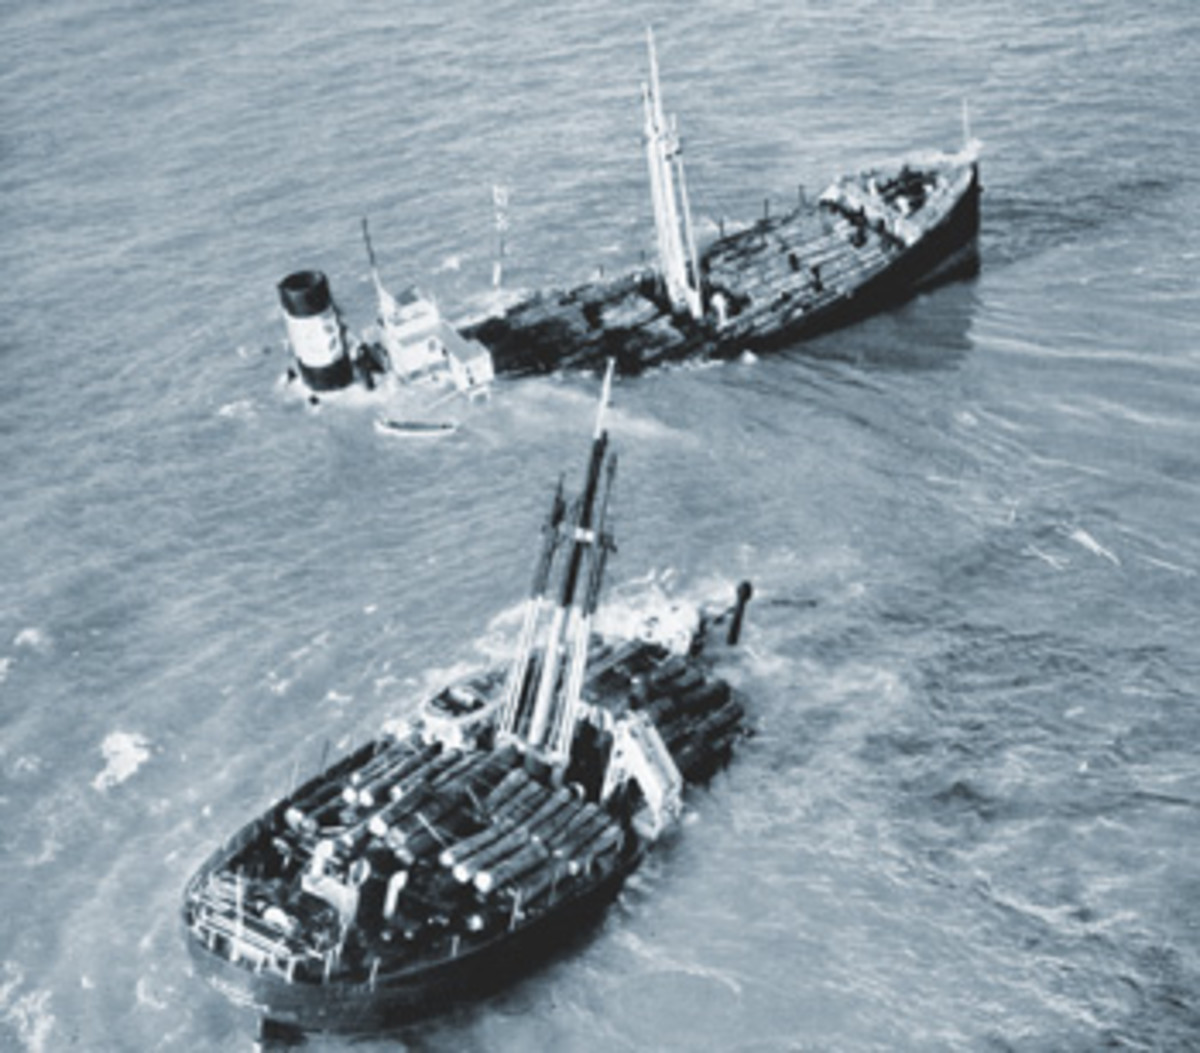 Countless ships have been lost on Goodwin Sands, an immense shoal off England's Deal coast.